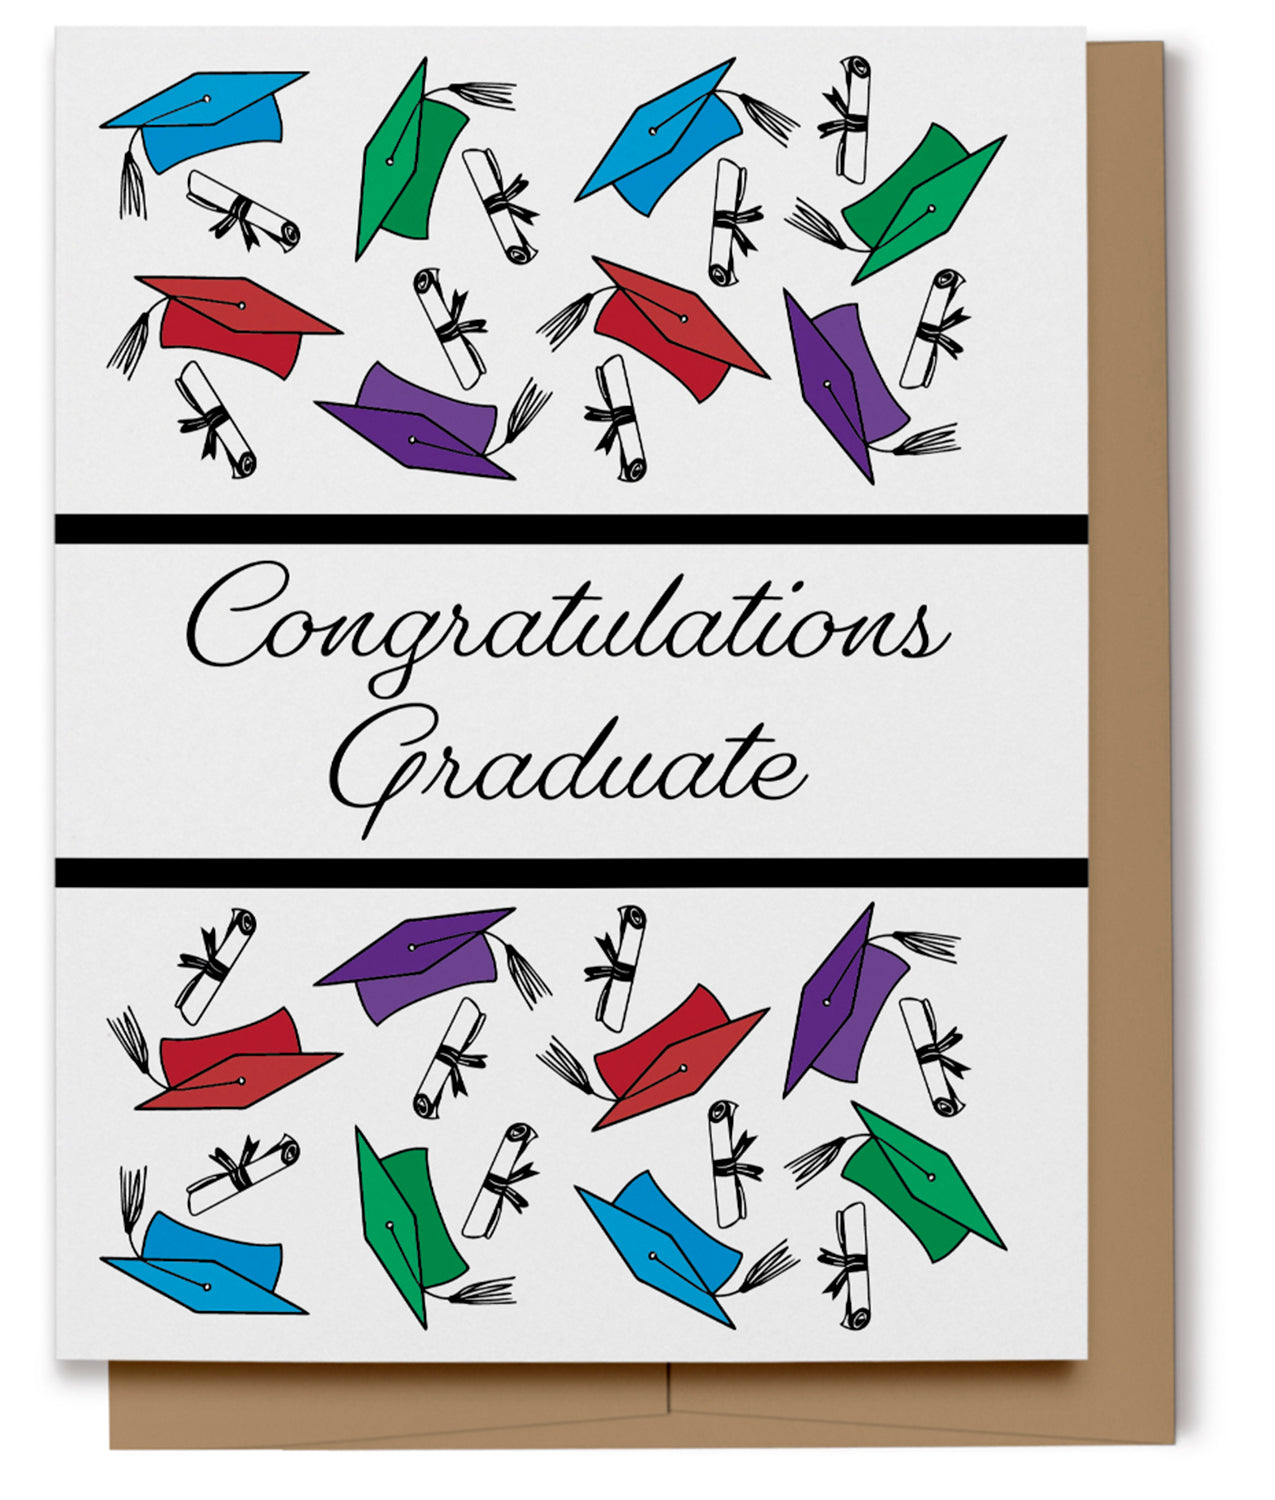 Congratulations Graduate Card (100% Recycled)